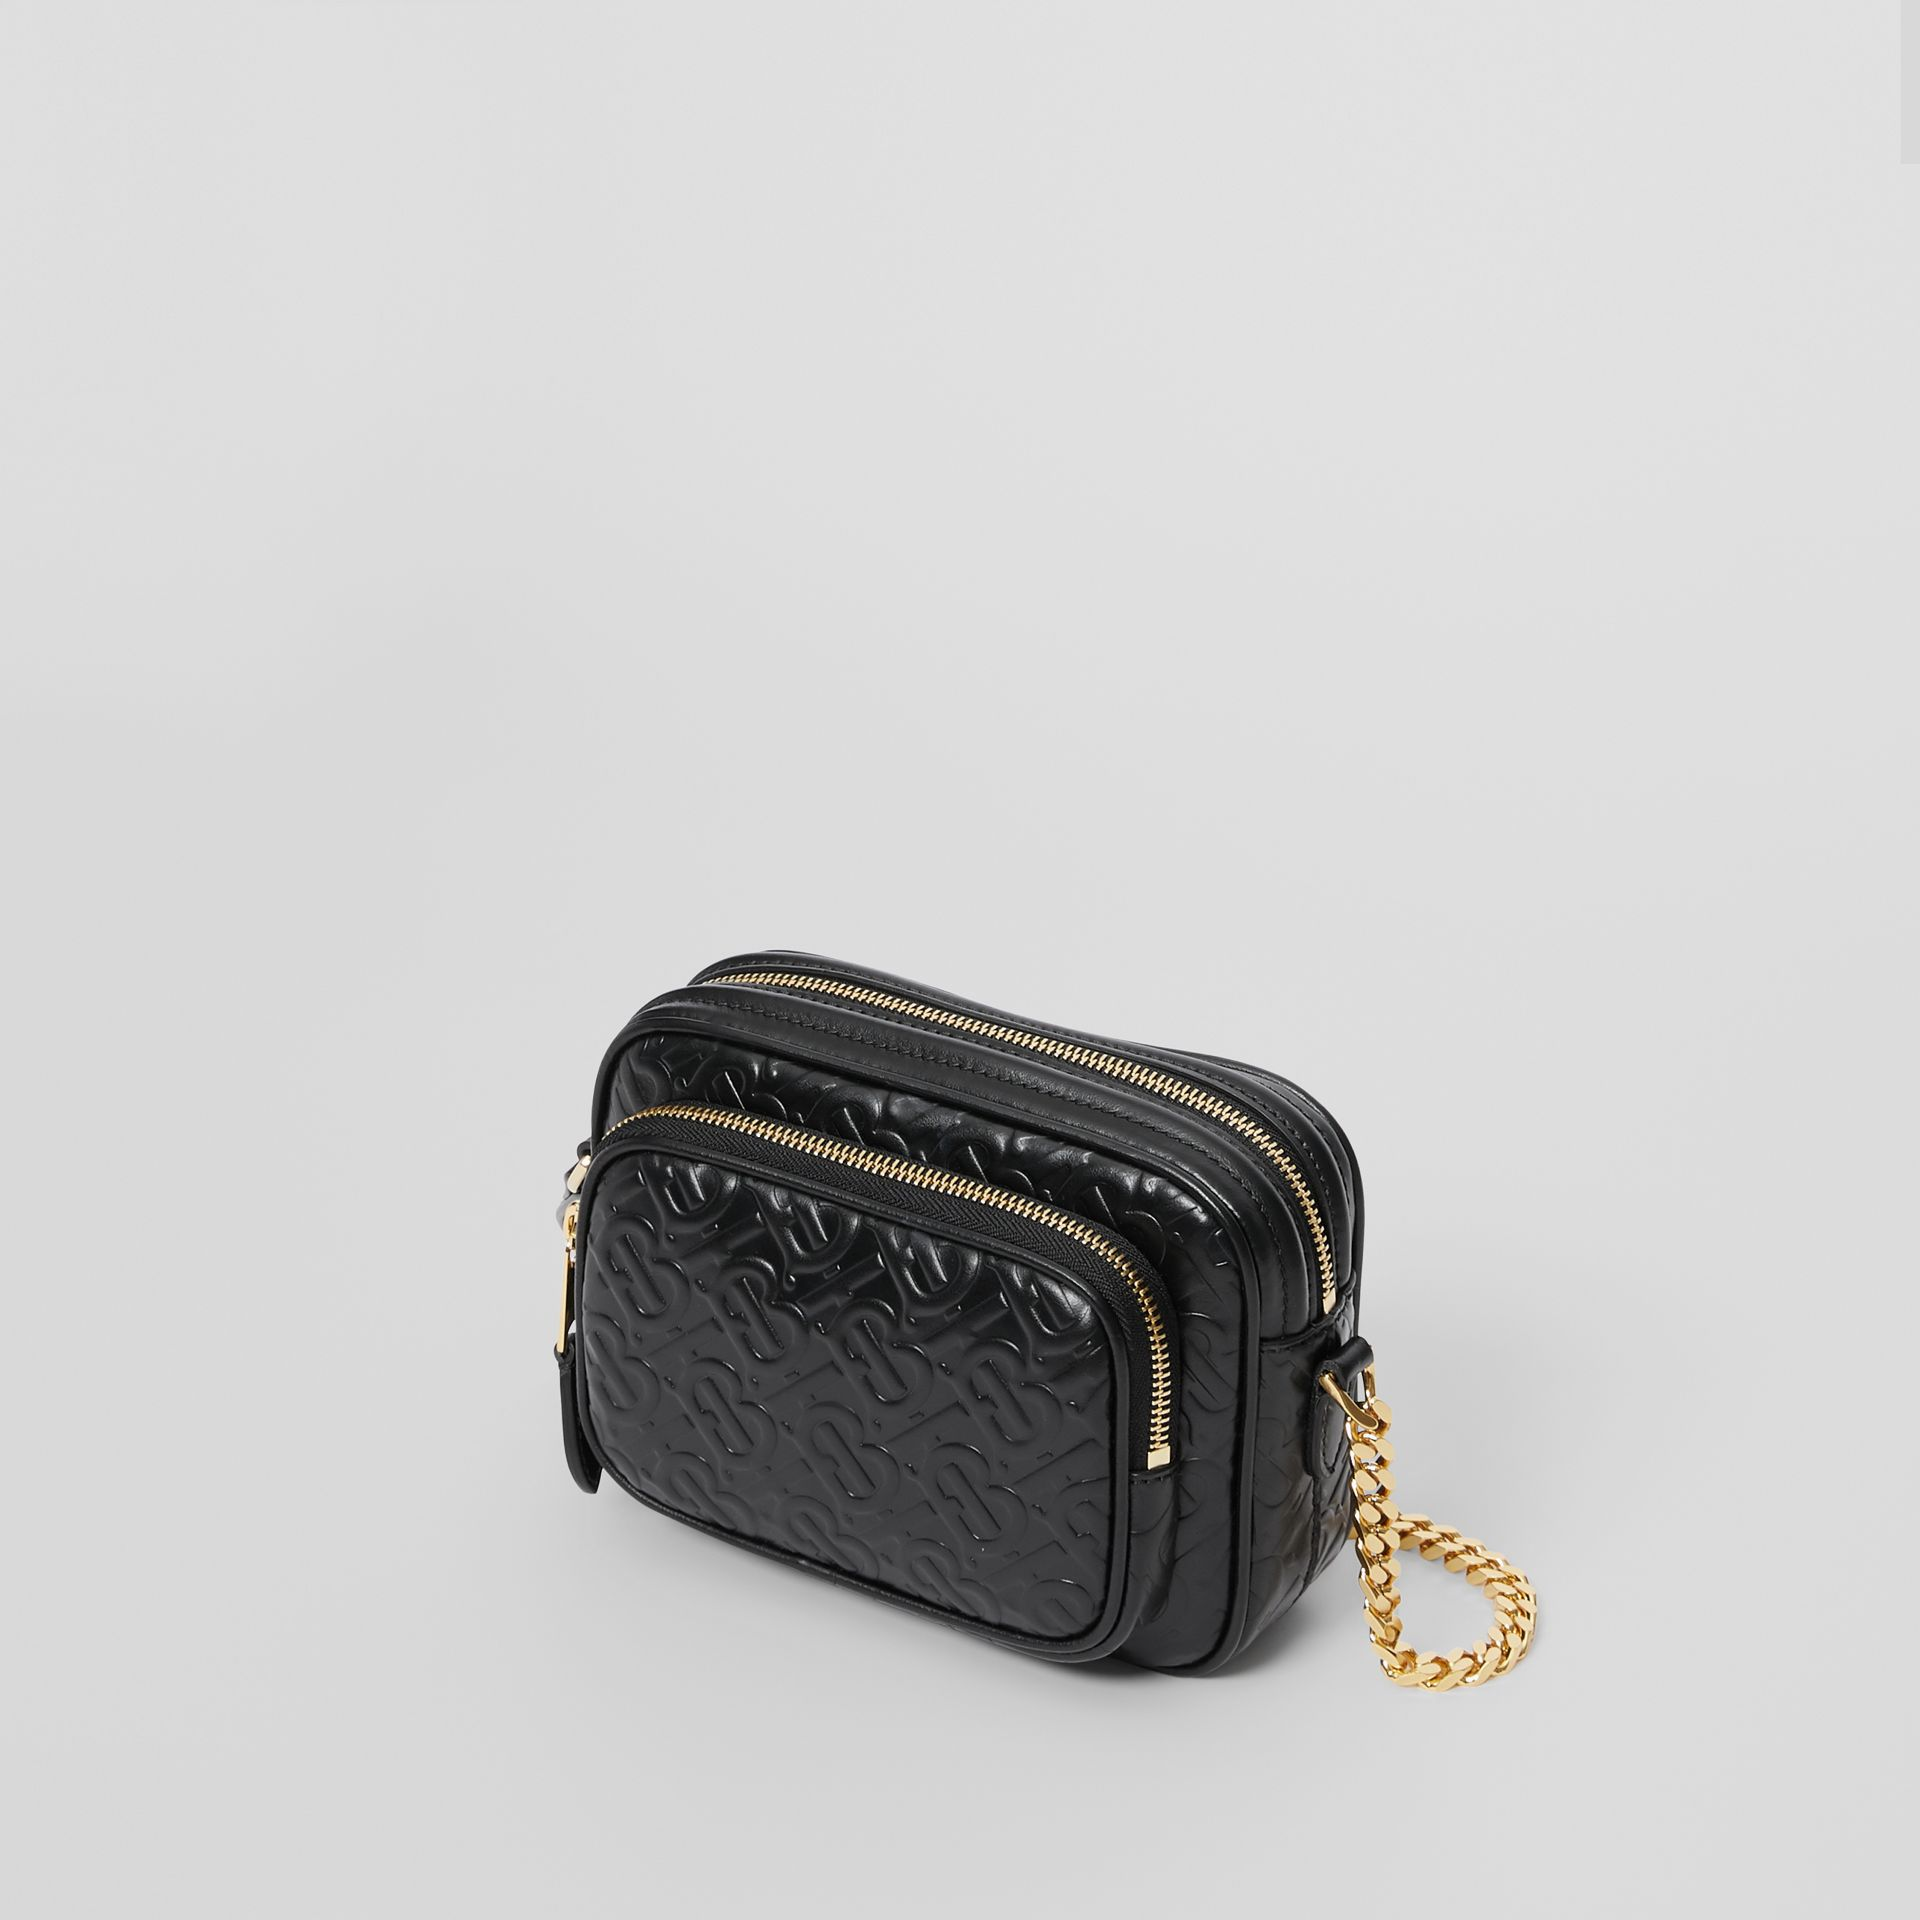 Monogram Leather Camera Bag in Black - Women | Burberry United Kingdom - gallery image 2